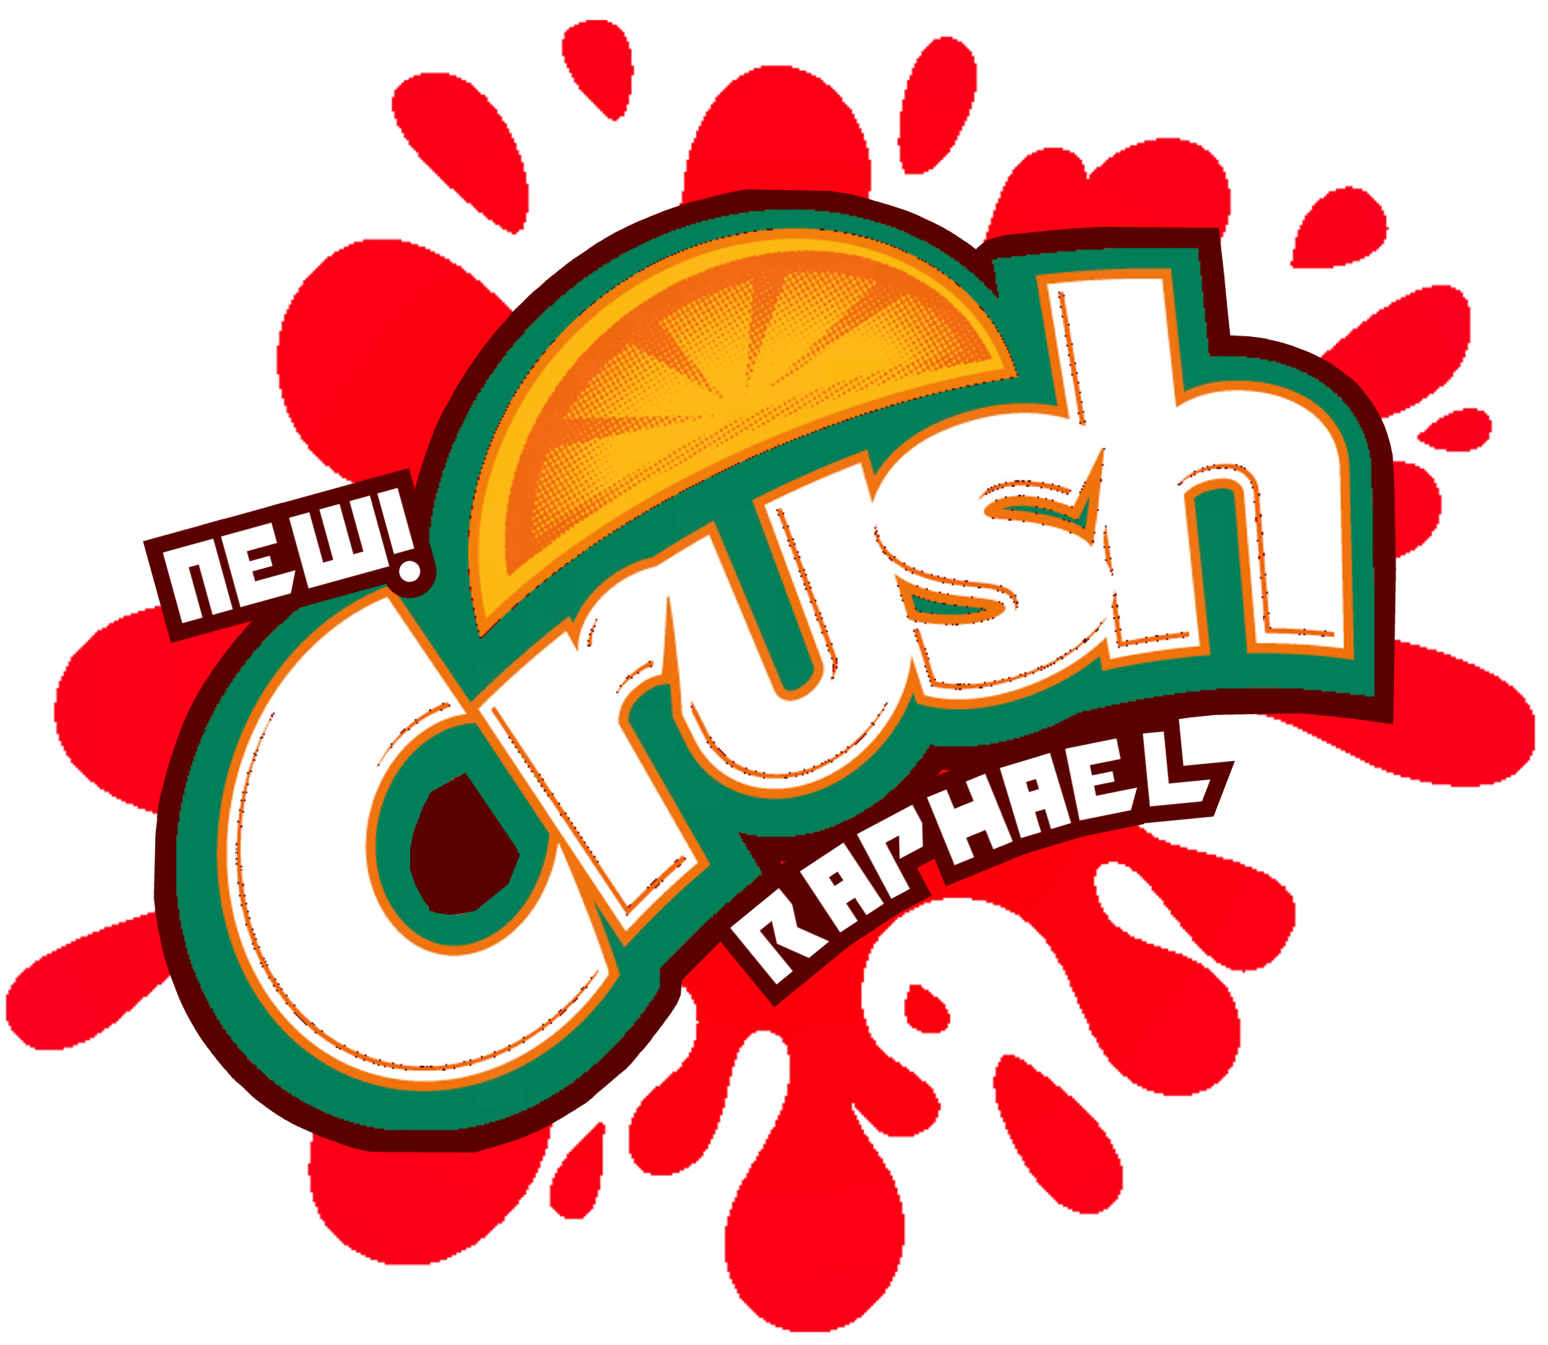 the holidaze tmnt crush raphael strawberry rh the holidaze blogspot com crush logo history crush logo font